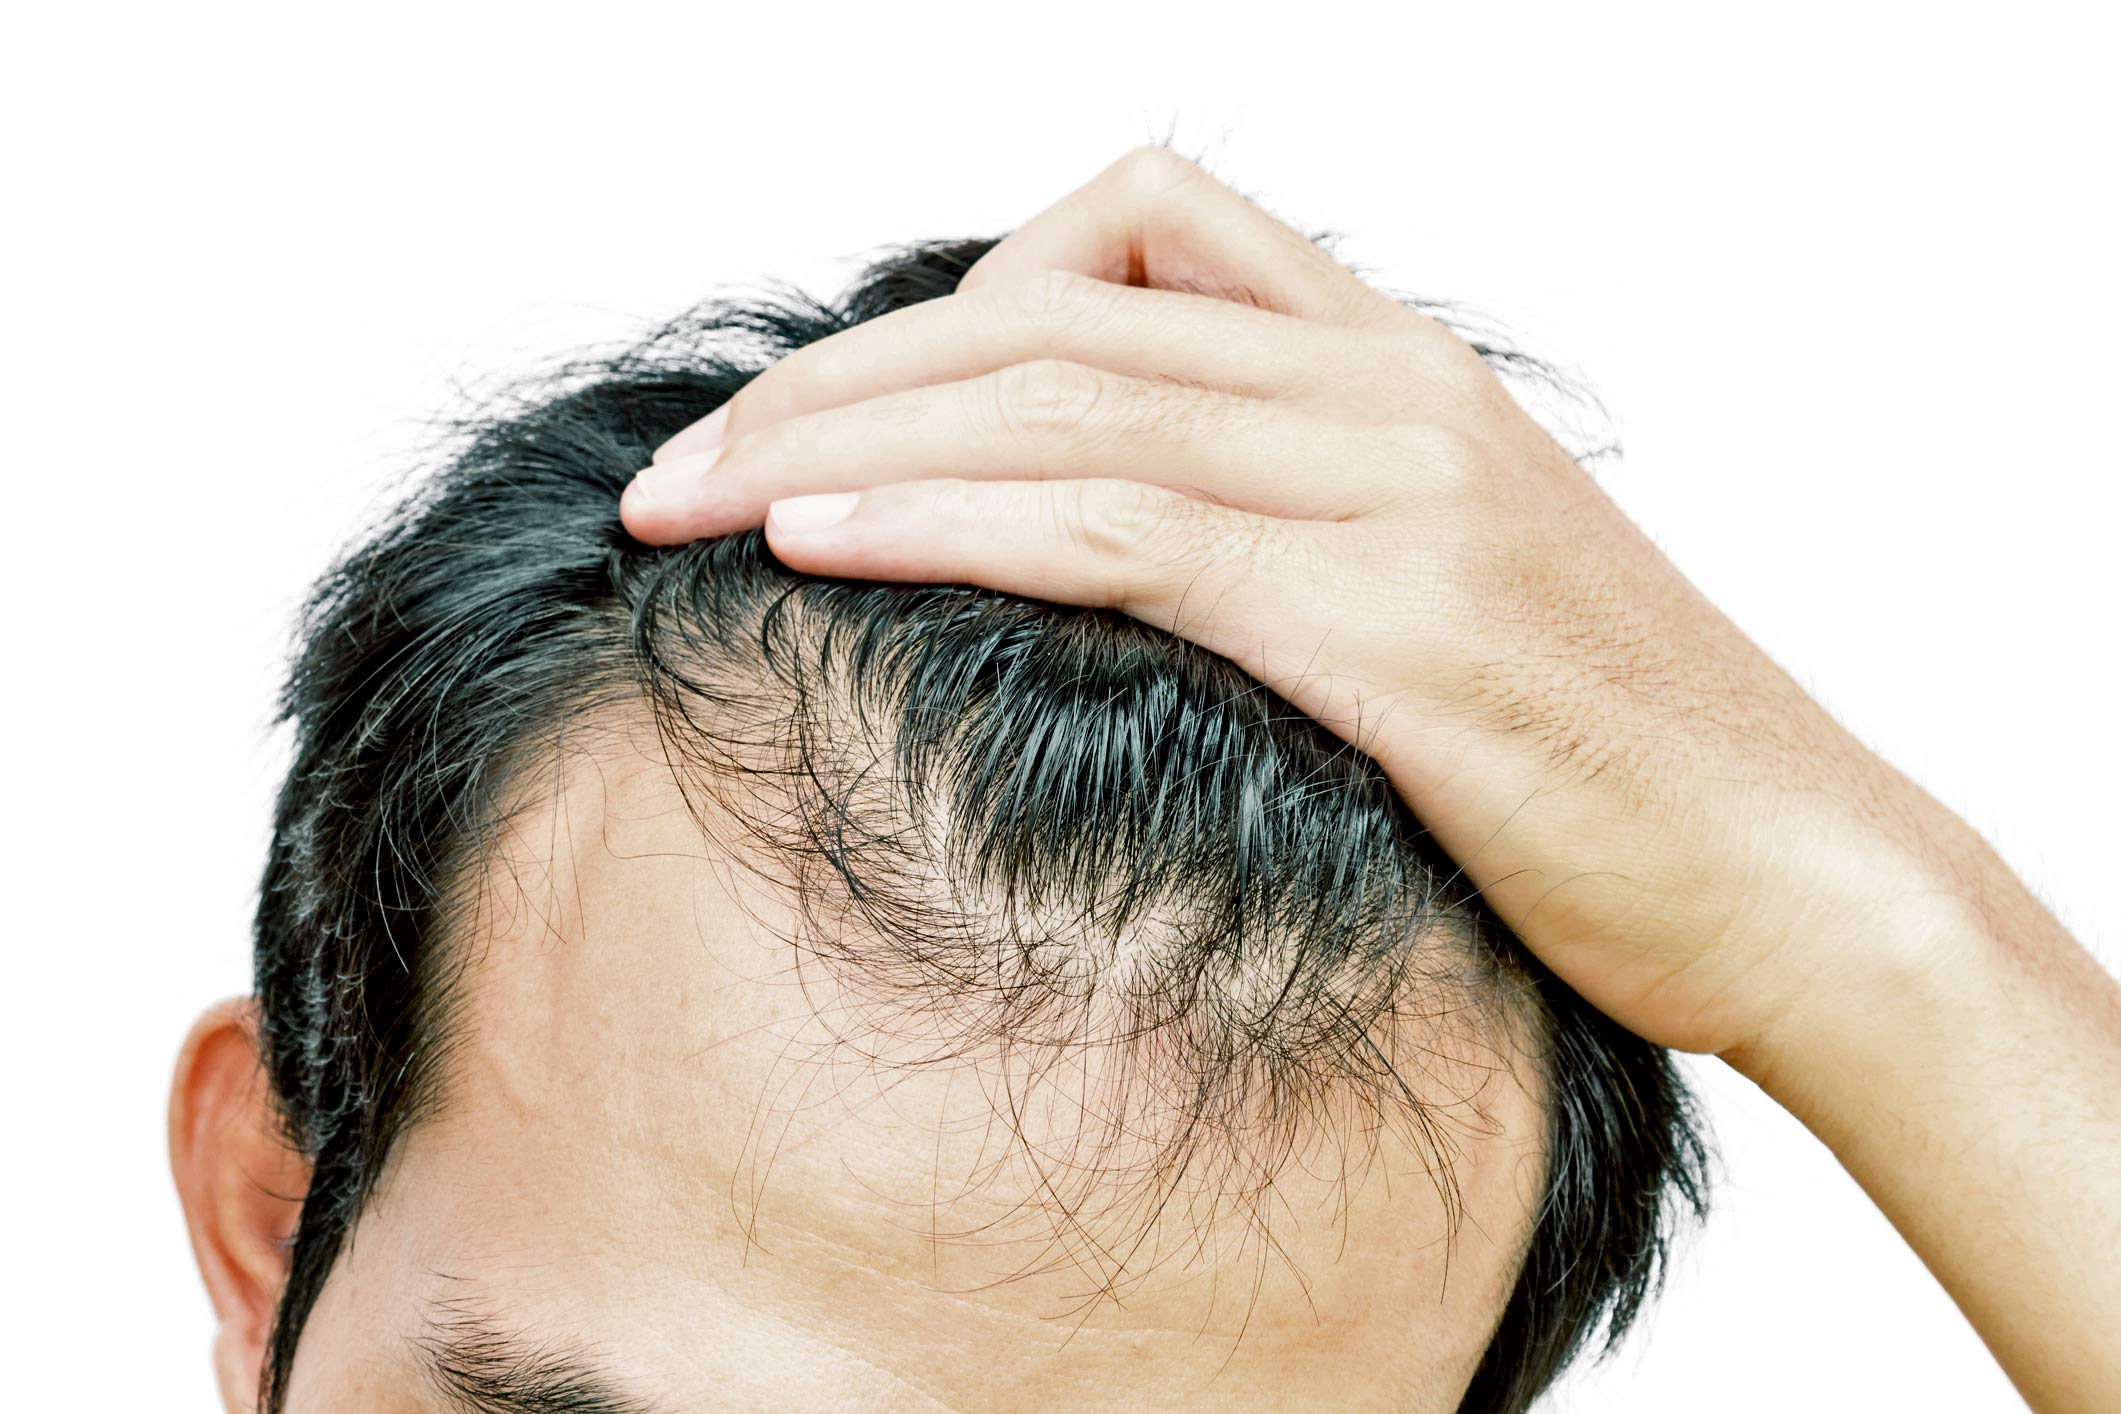 Erectile dysfunction from hair-loss drugs can linger